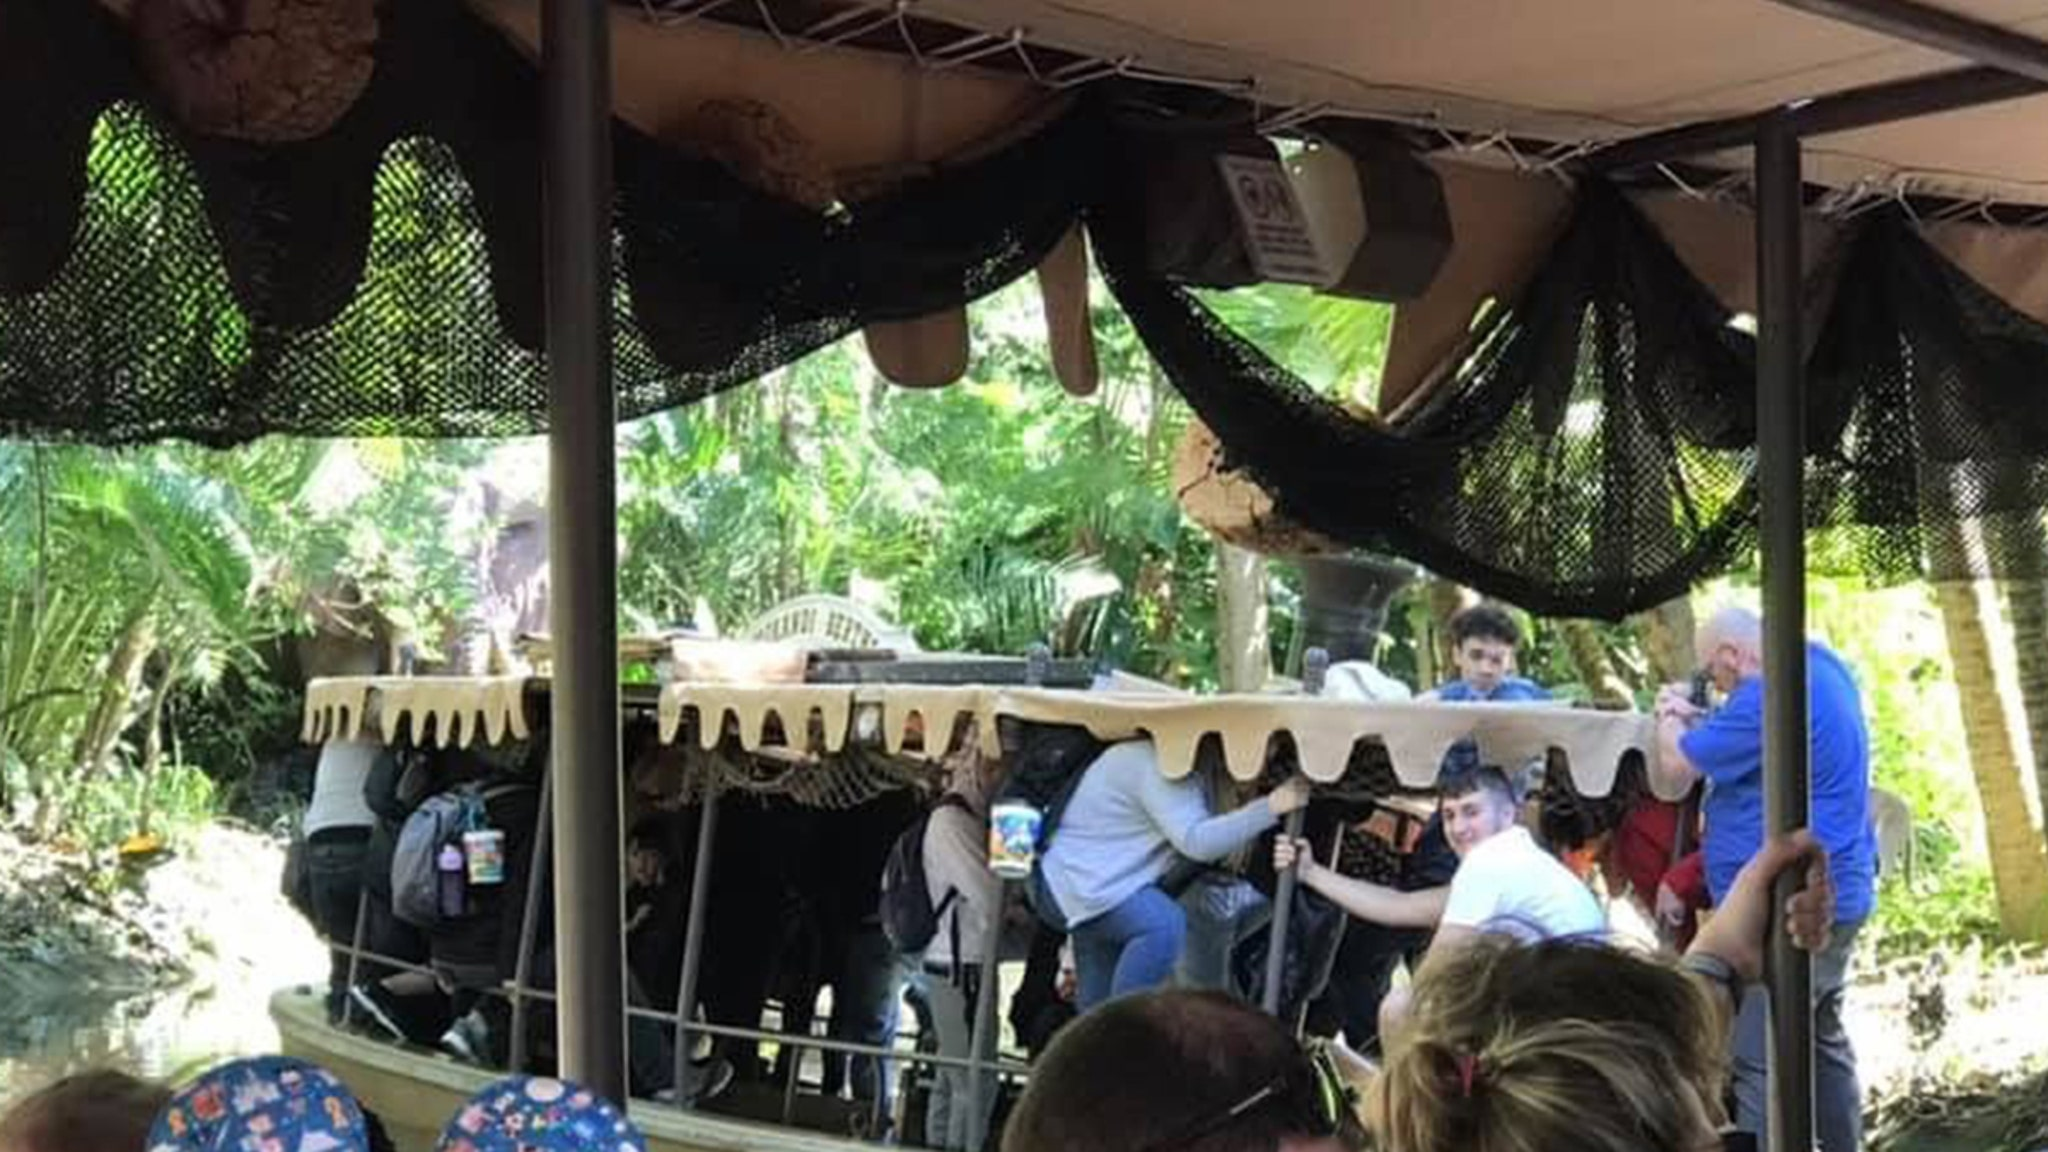 Disney Jungle Cruise Boat Sinks with People Aboard at Magic Kingdom